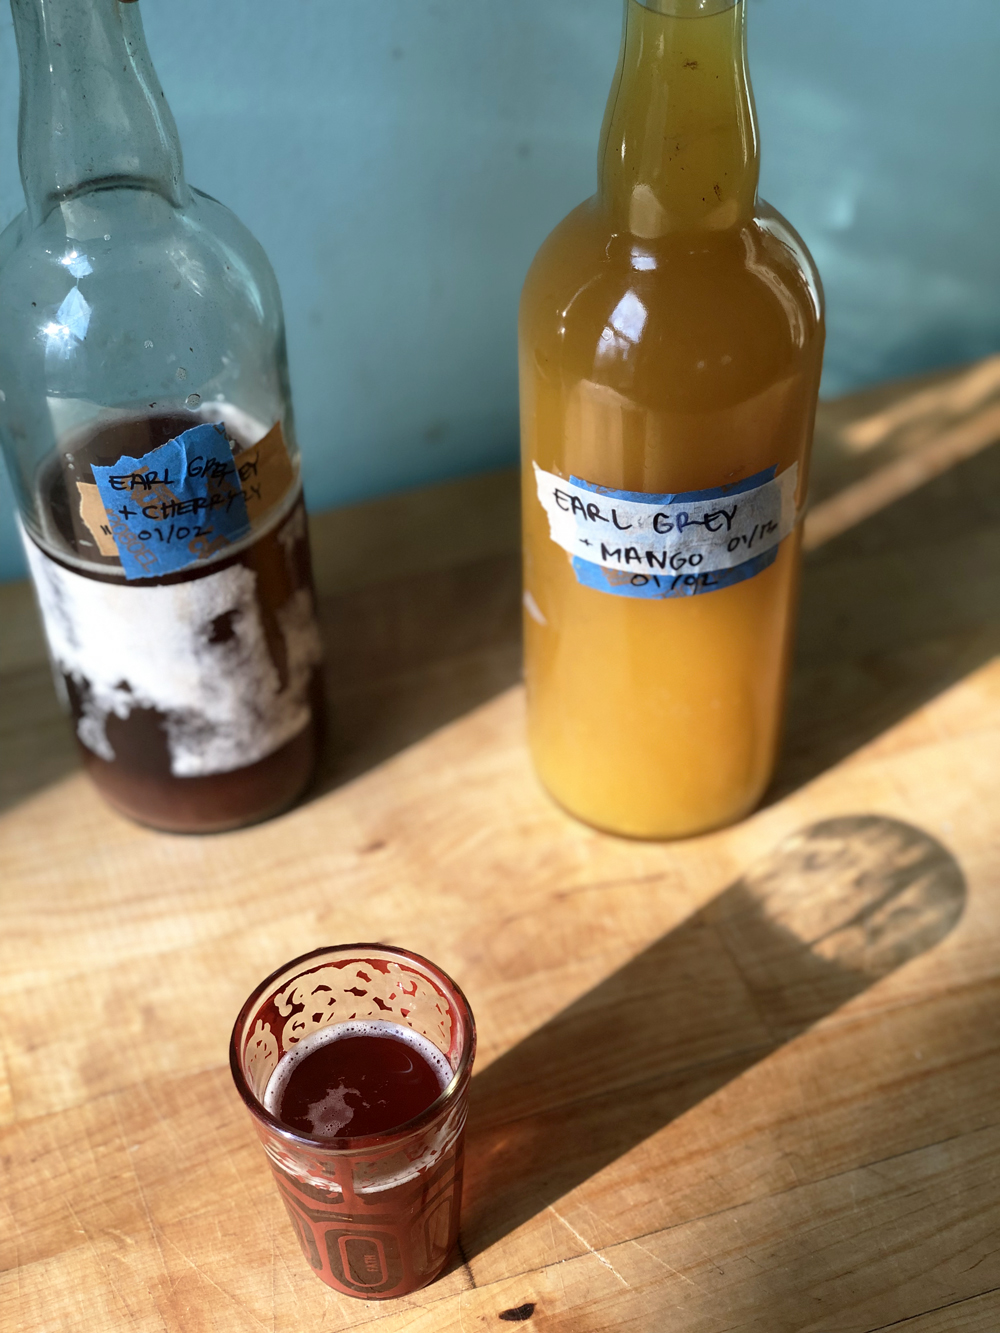 DIY kombucha fermented probiotic drink